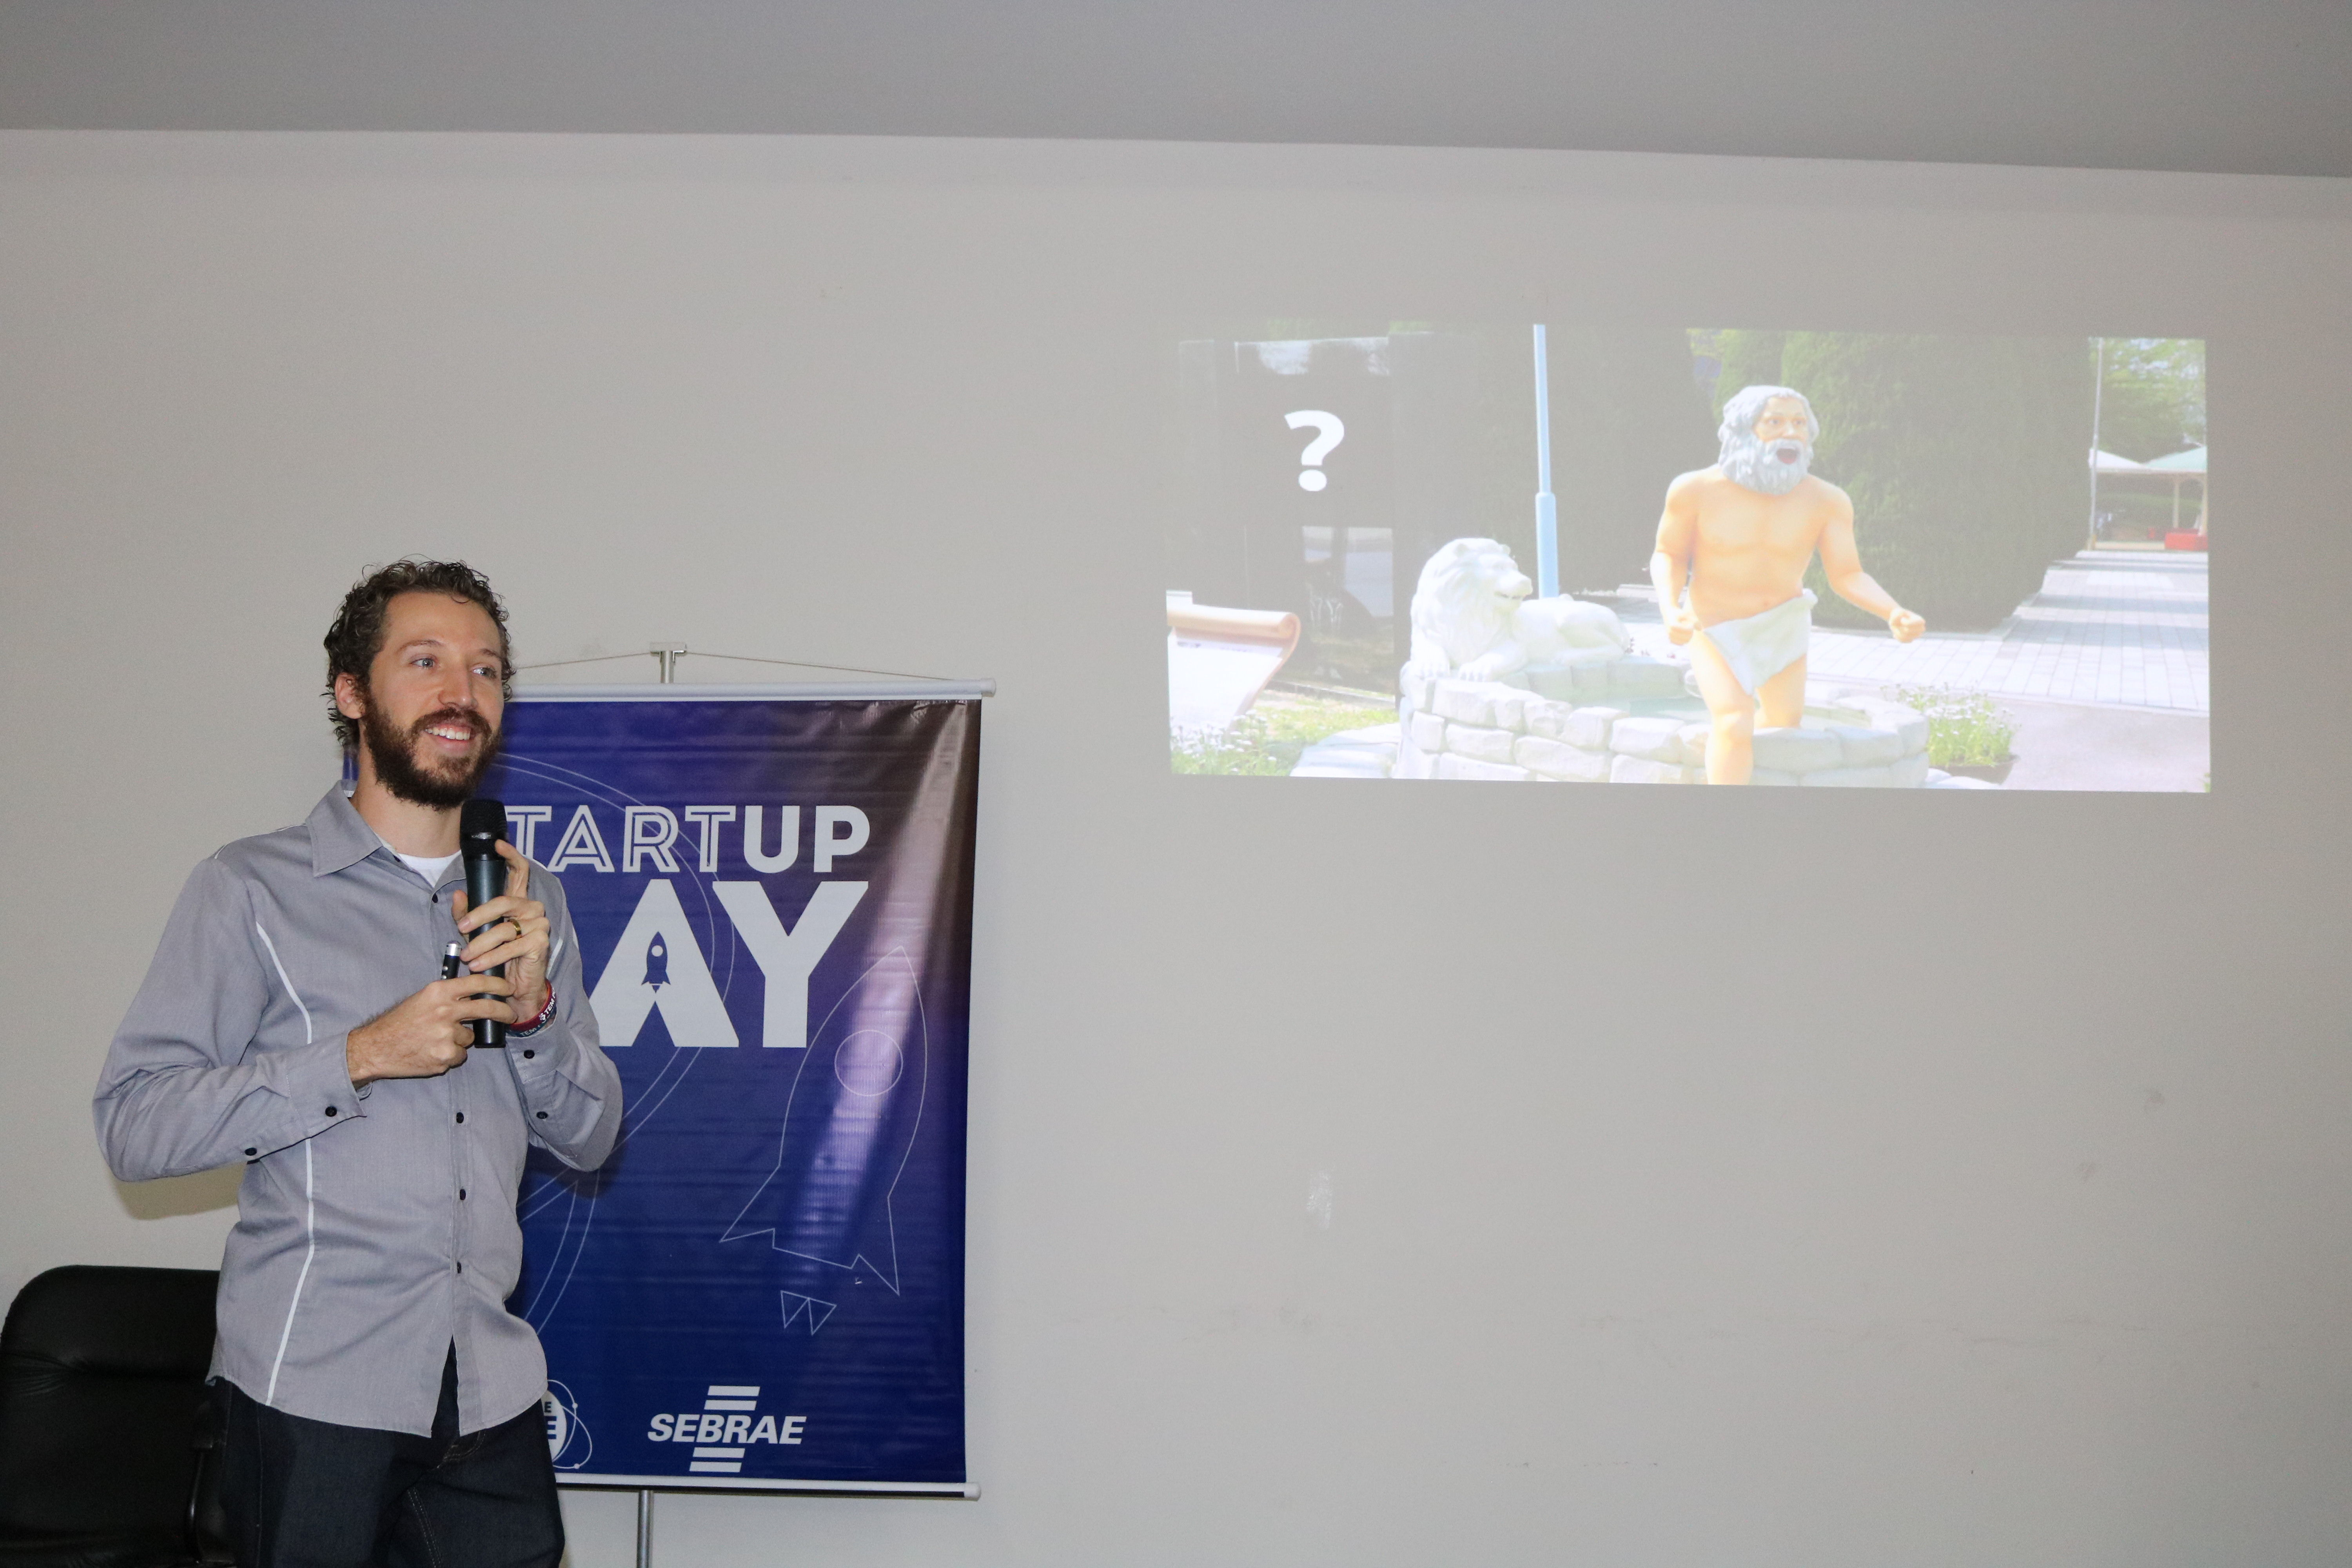 Startup Day 2019 05